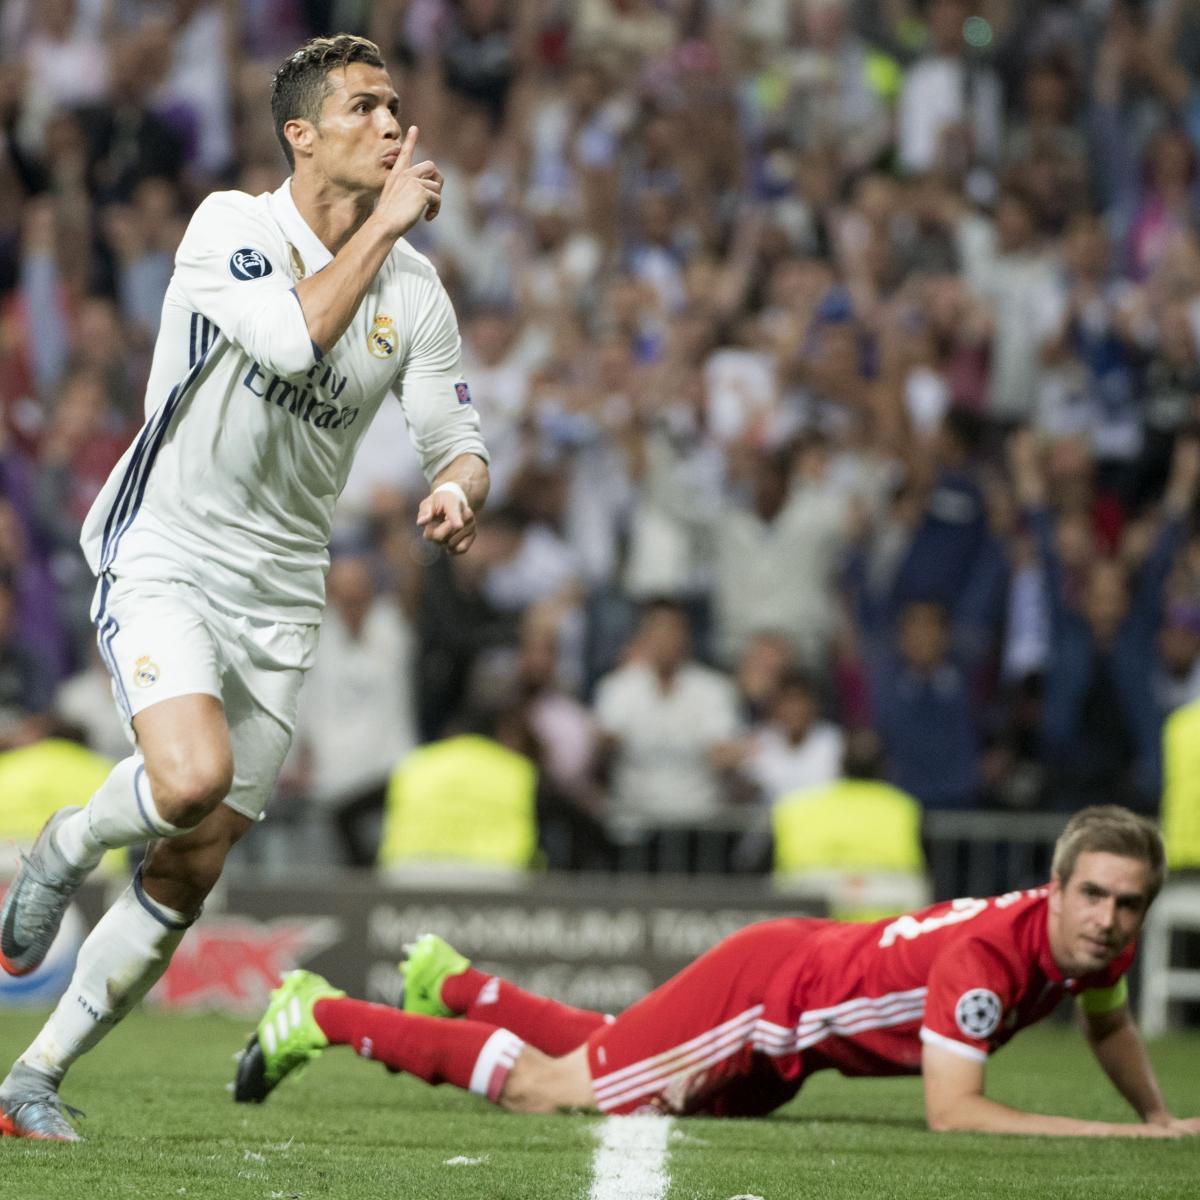 Cristiano Ronaldo S 4 Goals Lead Real Madrid To Win Vs: Cristiano Ronaldo Hat-Trick Puts Real Madrid In 7th